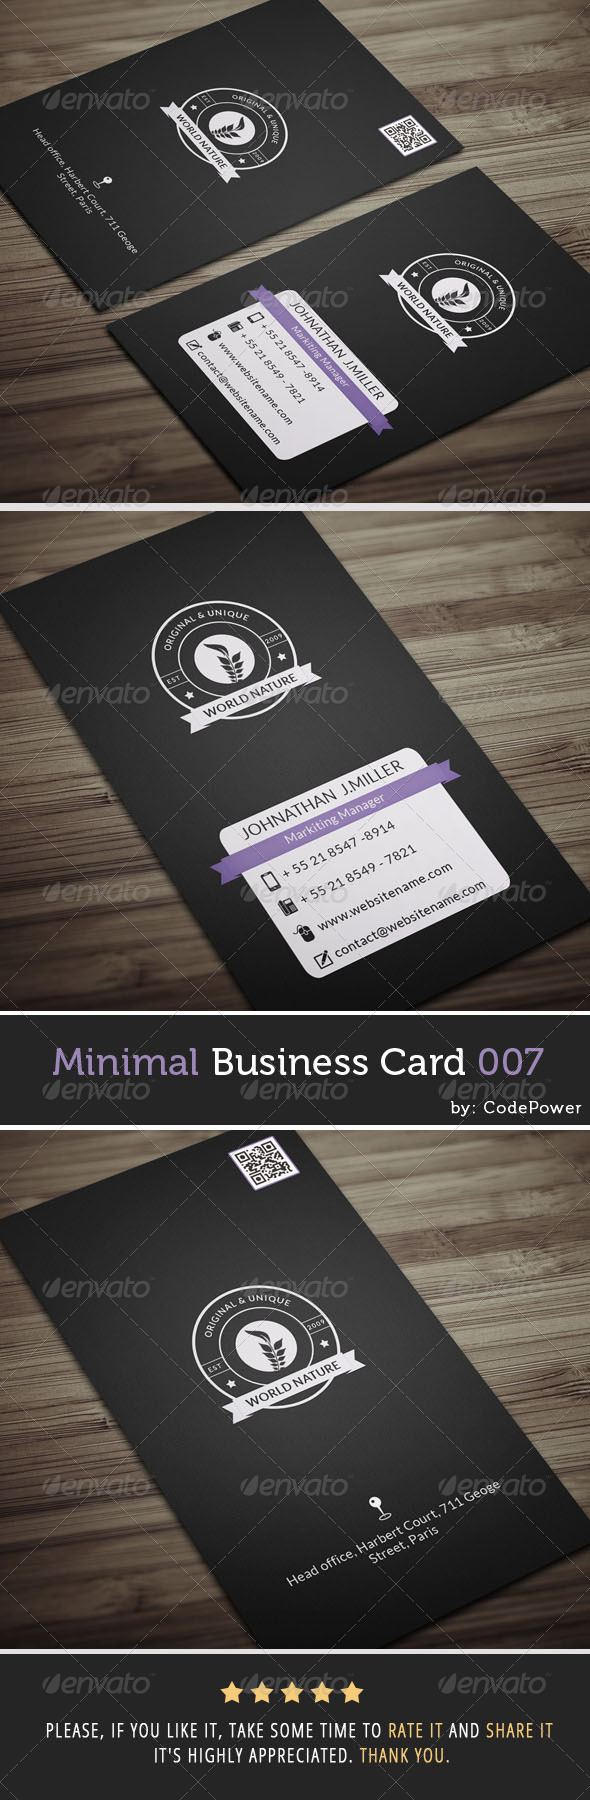 Minimal Business Card 007 - Corporate Business Cards